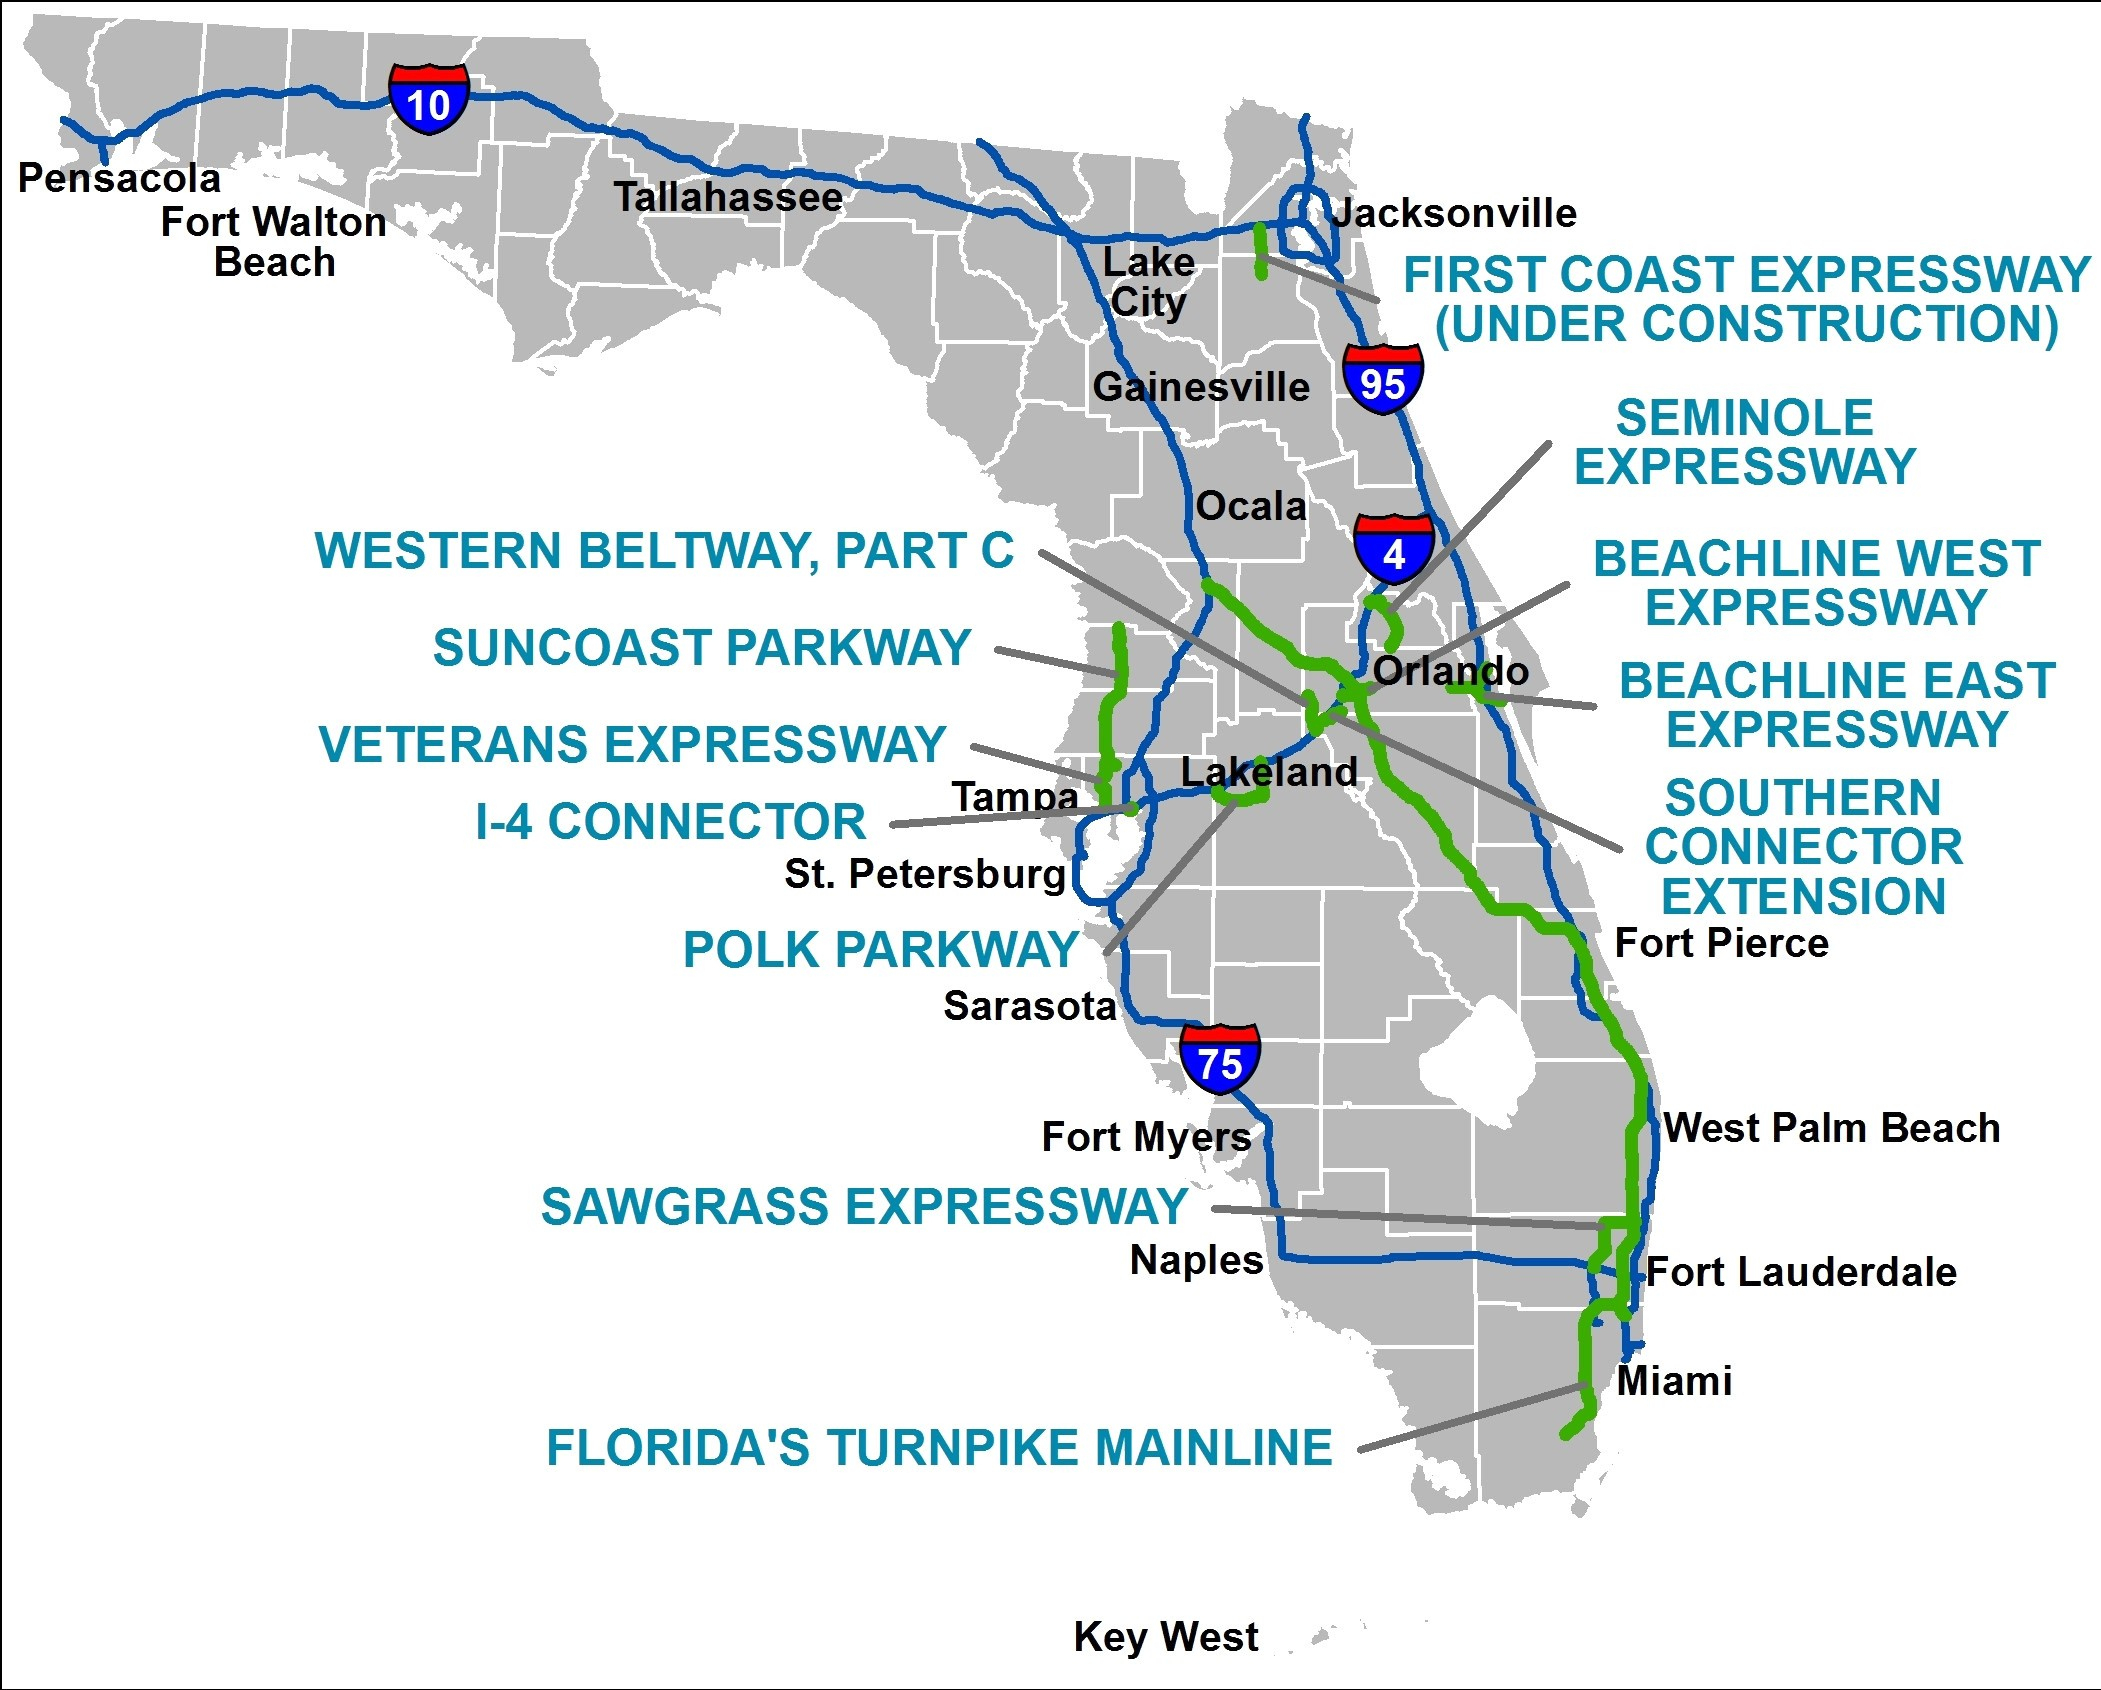 Gulf Coast Cities In Florida Map Florida Panhandle Cities Map - Gulf Coast Cities In Florida Map